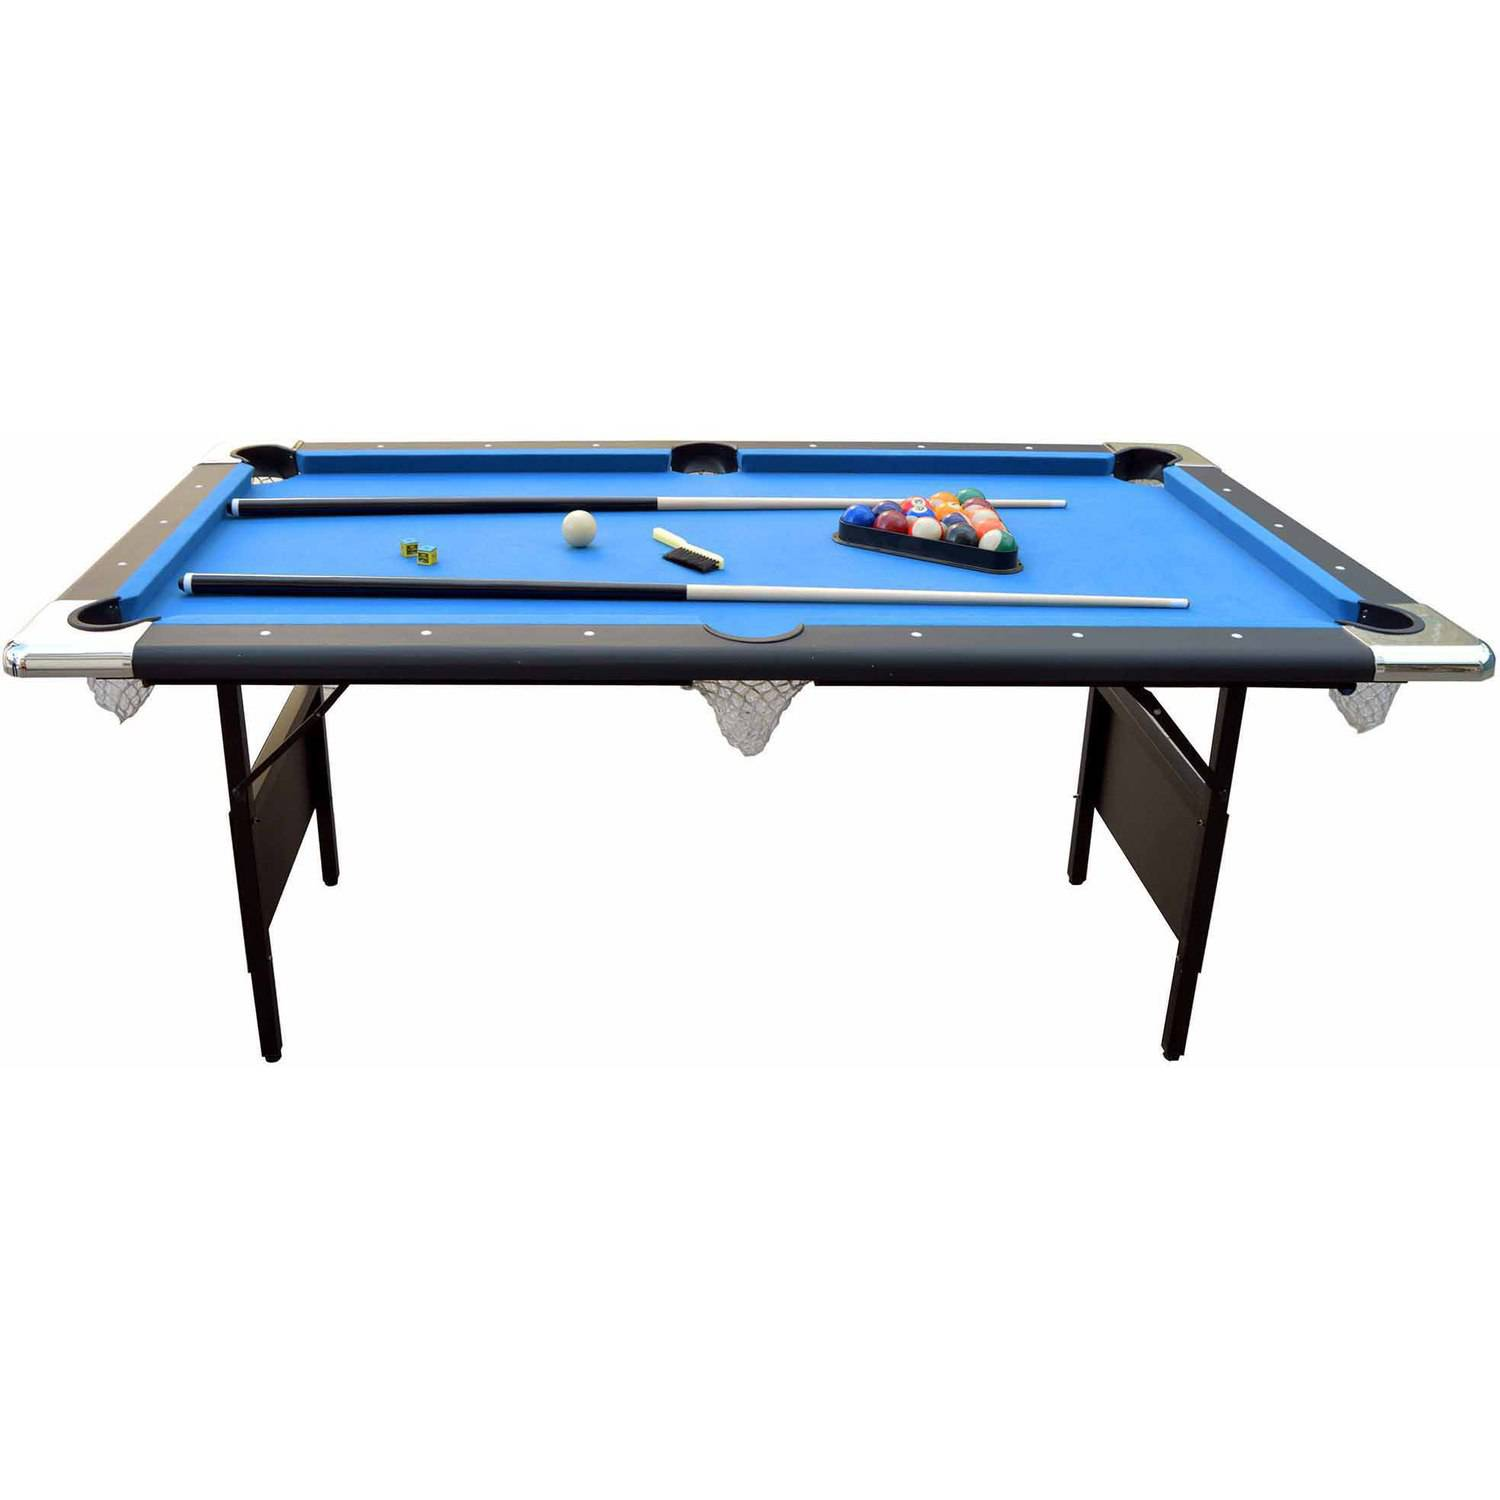 Folding legs pool table for sale - Folding Legs Pool Table For Sale 16